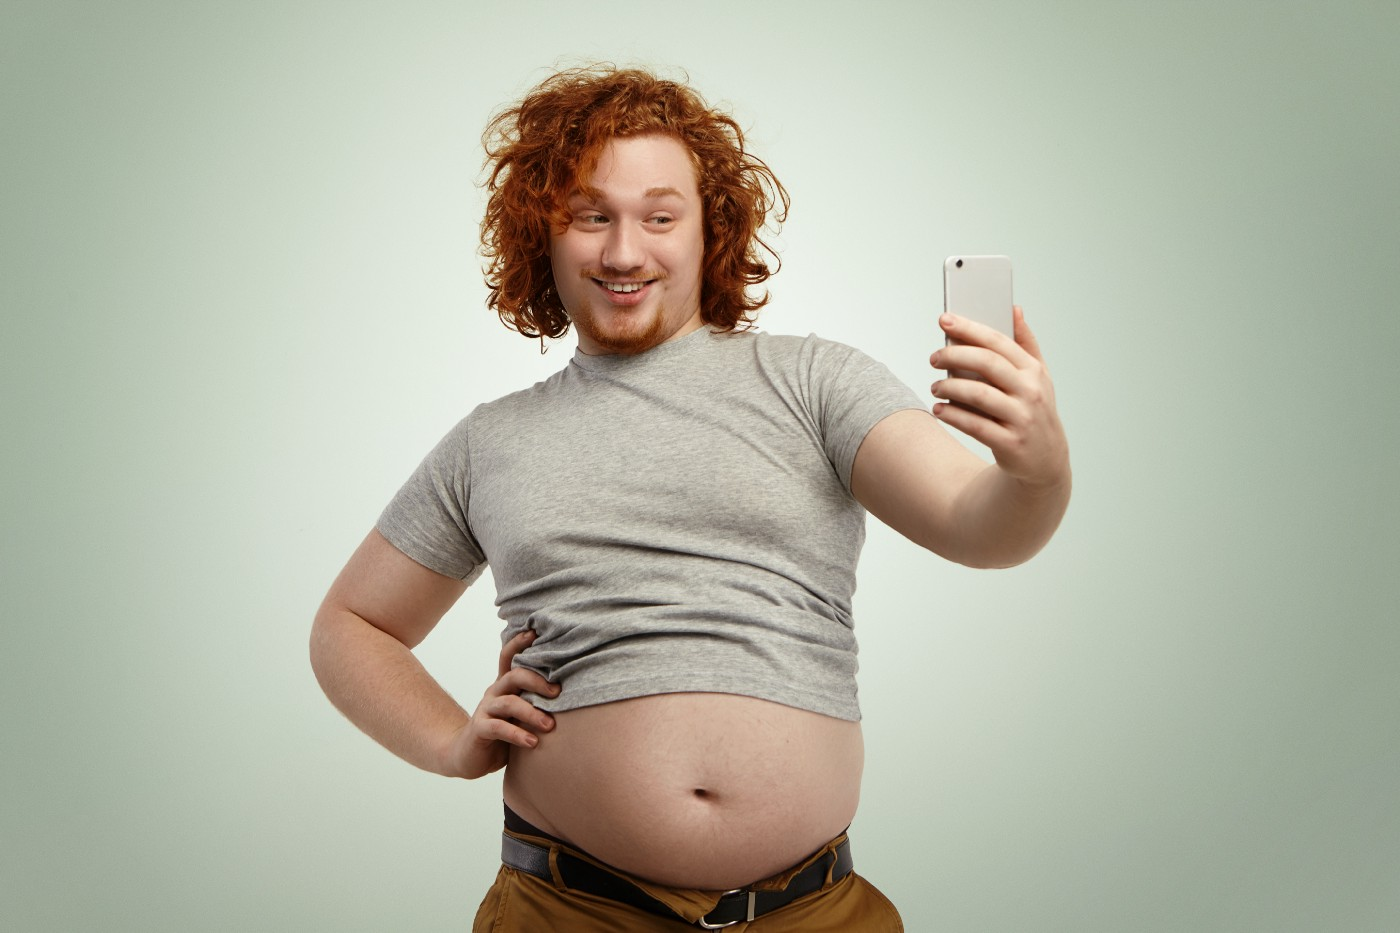 obese-young-male-with-curly-ginger-hair-beard-holding-mobile-phone-posing-selfie-looking-with-flirty-smile-while-his-fat-belly-hanging-out-grey-shrunk-t-shirt-jeans-pants—Un Swede